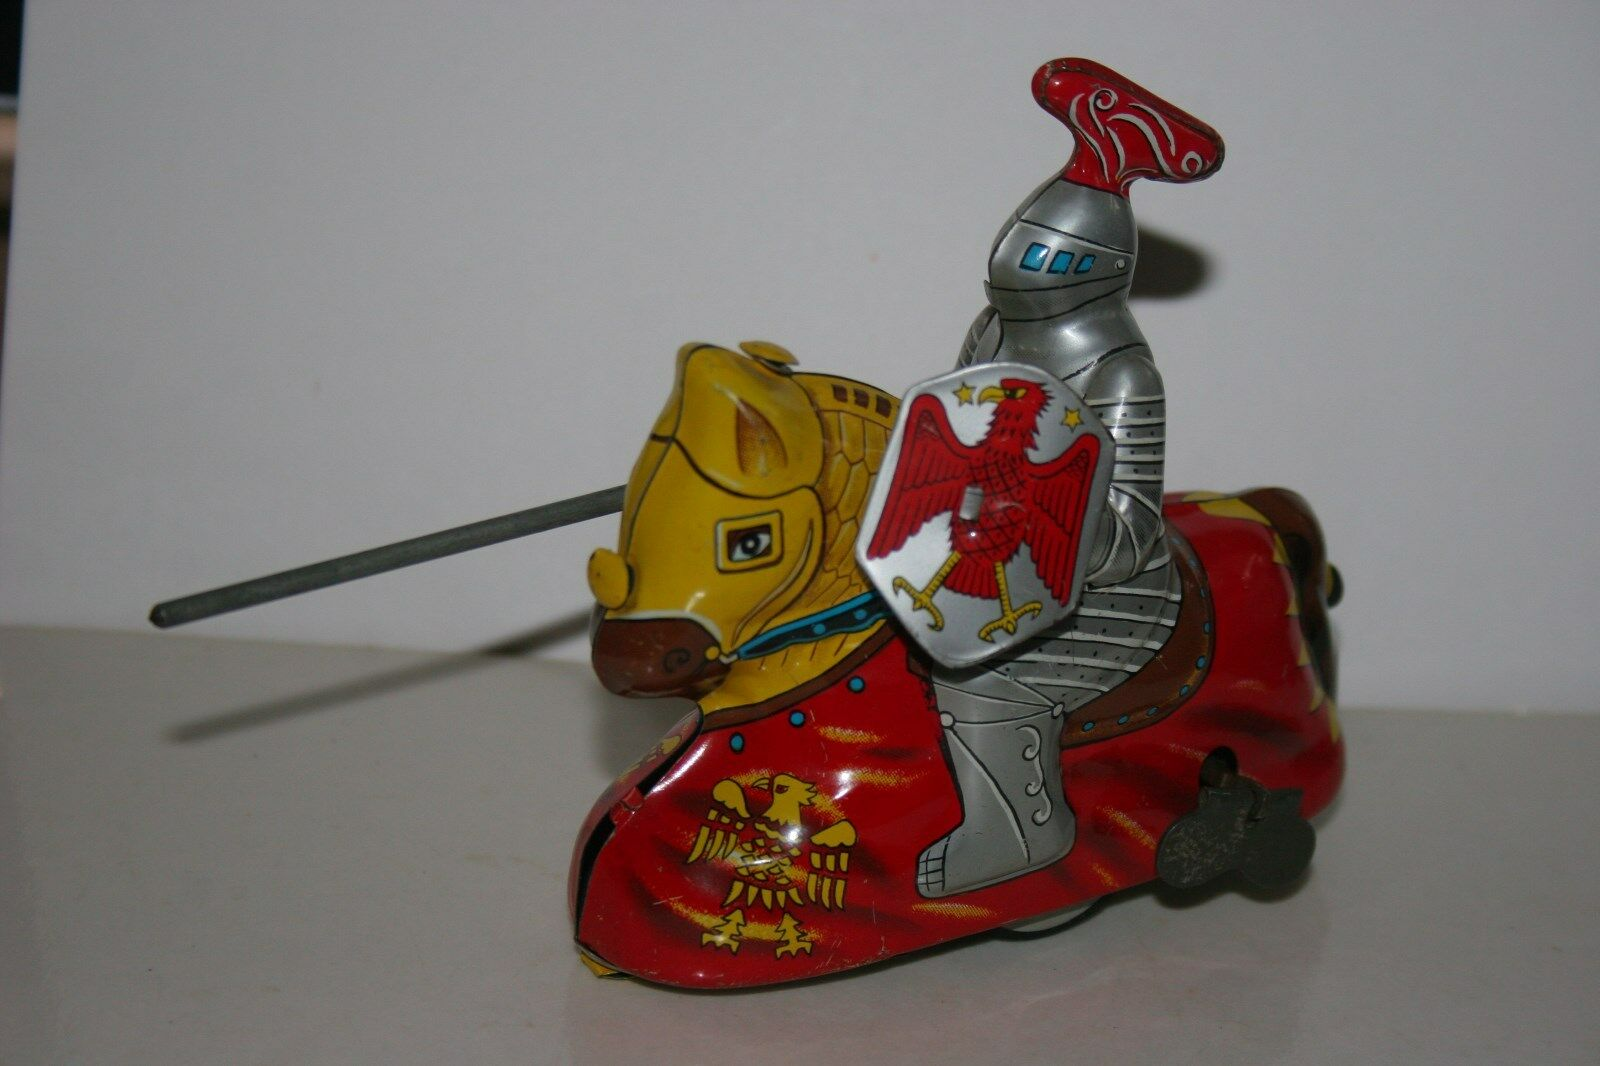 RARE VINTAGE 1950'S HAJI WIND UP TIN MEDIEVAL KNIGHT ON A HORSE